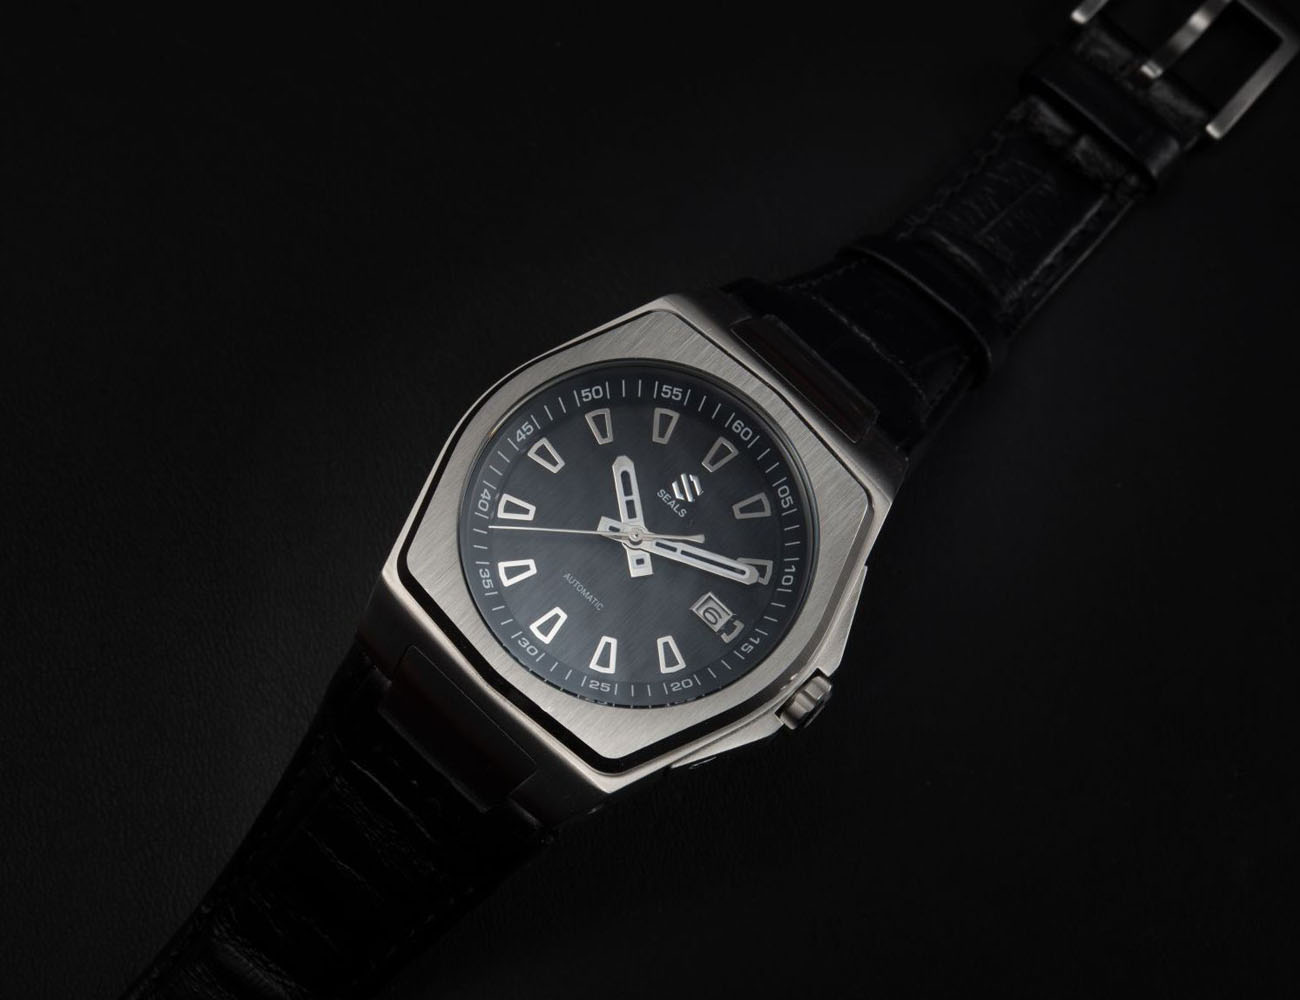 Seals Watch Company – Elegant Automatic Wrist Watches